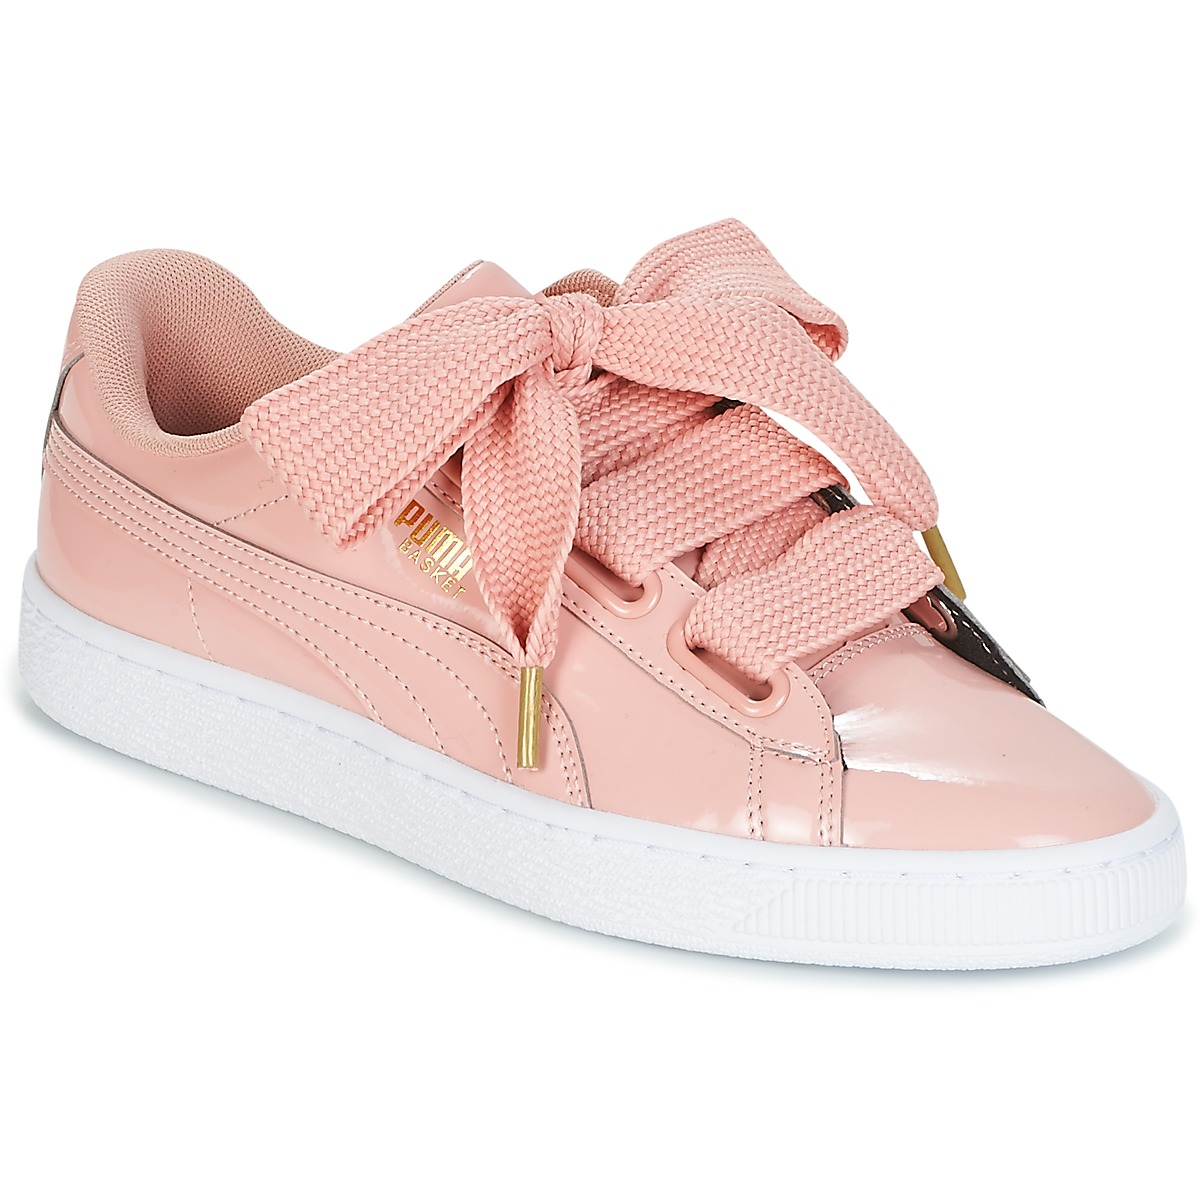 escucho música Intensivo Reina  Puma BASKET HEART PATENT W'S Pink - Fast delivery | Spartoo Europe ! -  Shoes Low top trainers Women 76,00 €